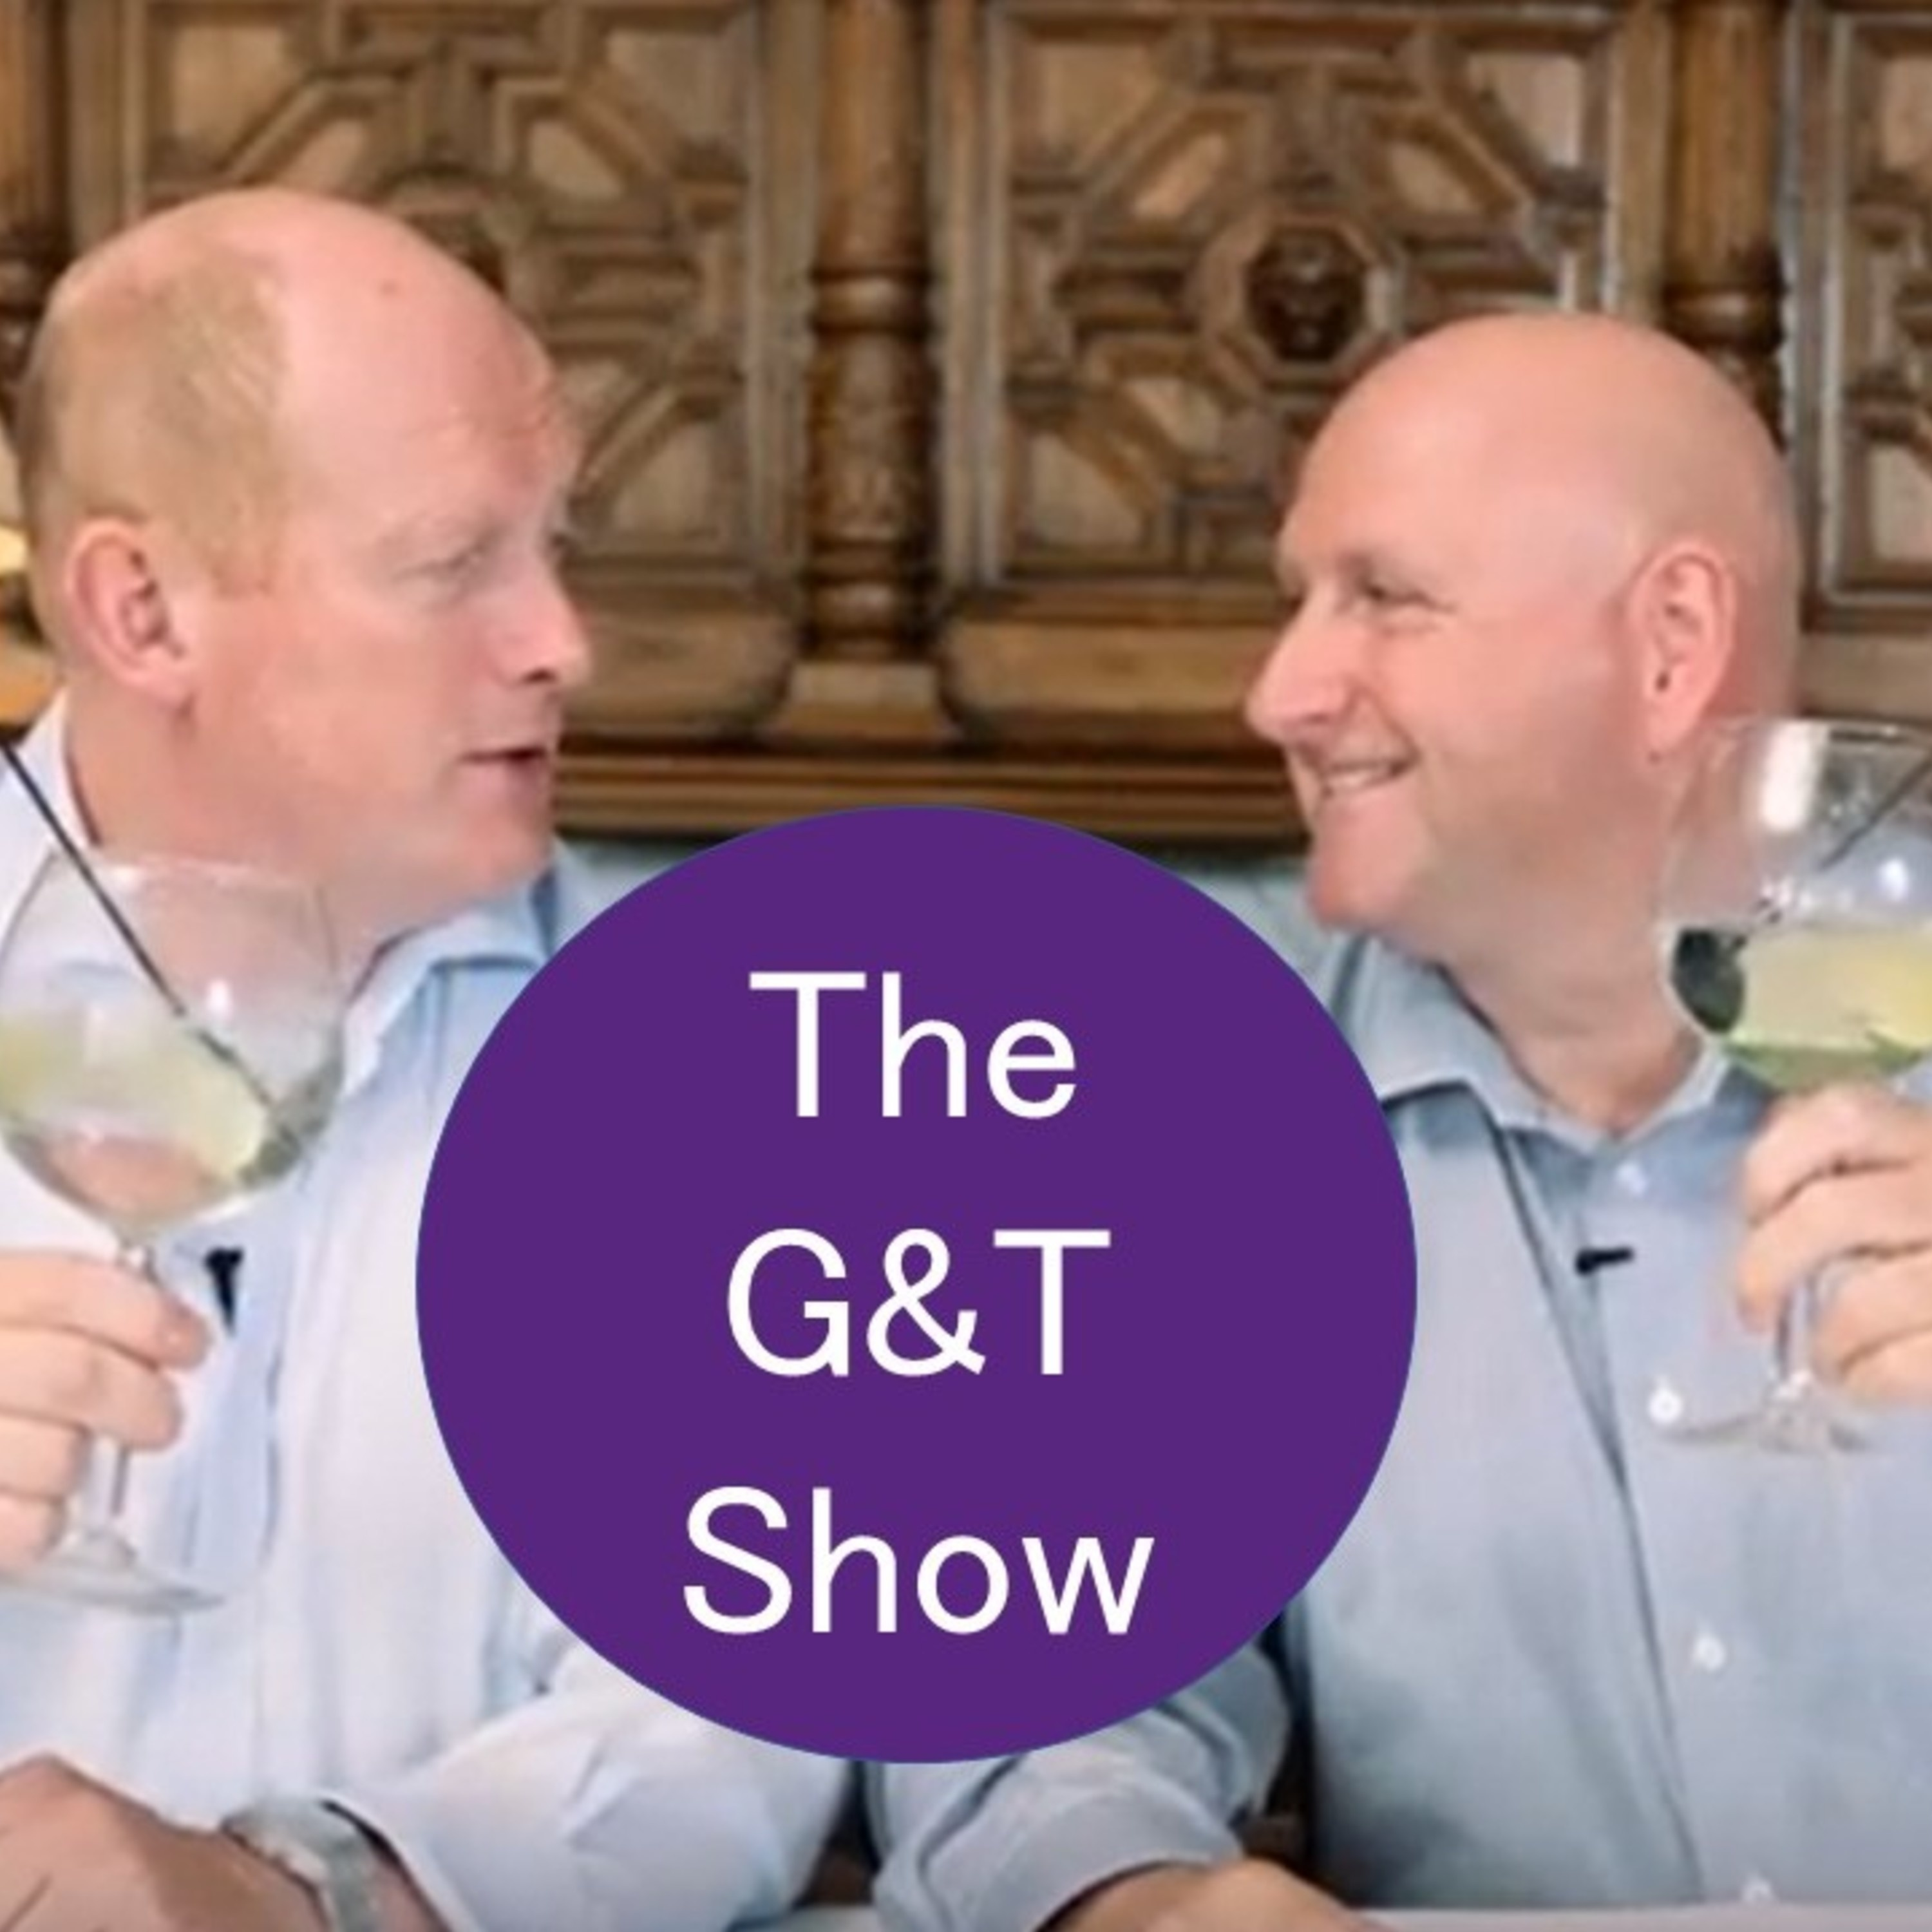 GBTV - G&T with Guy and Terry - How can you make money buying a business?